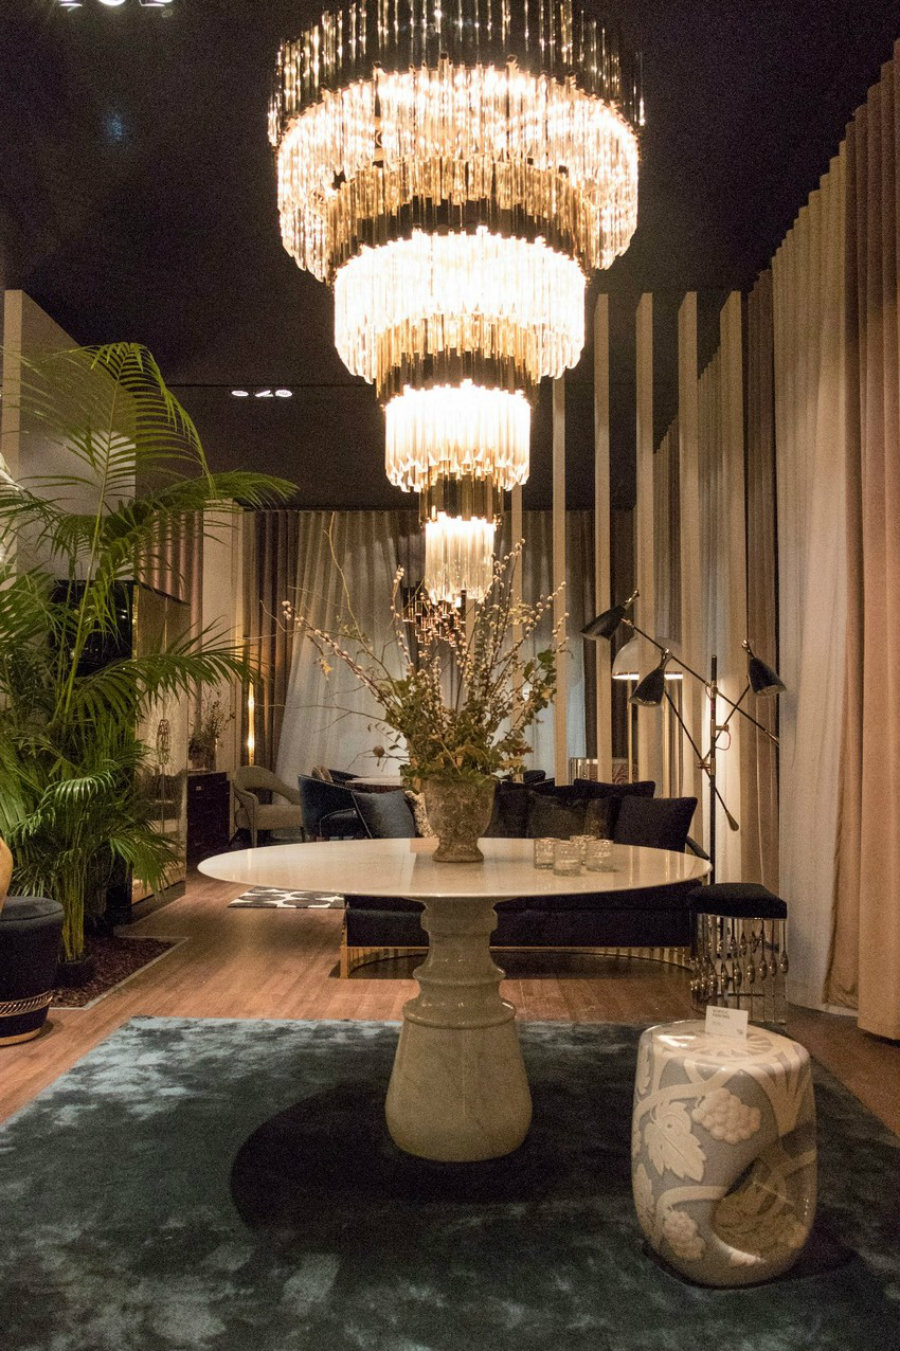 MAISON ET OBJET : A LOOK INTO SOME OF THE NEW PIECES maison et objet MAISON ET OBJET : A LOOK INTO SOME OF THE NEW PIECES turned oval dining table